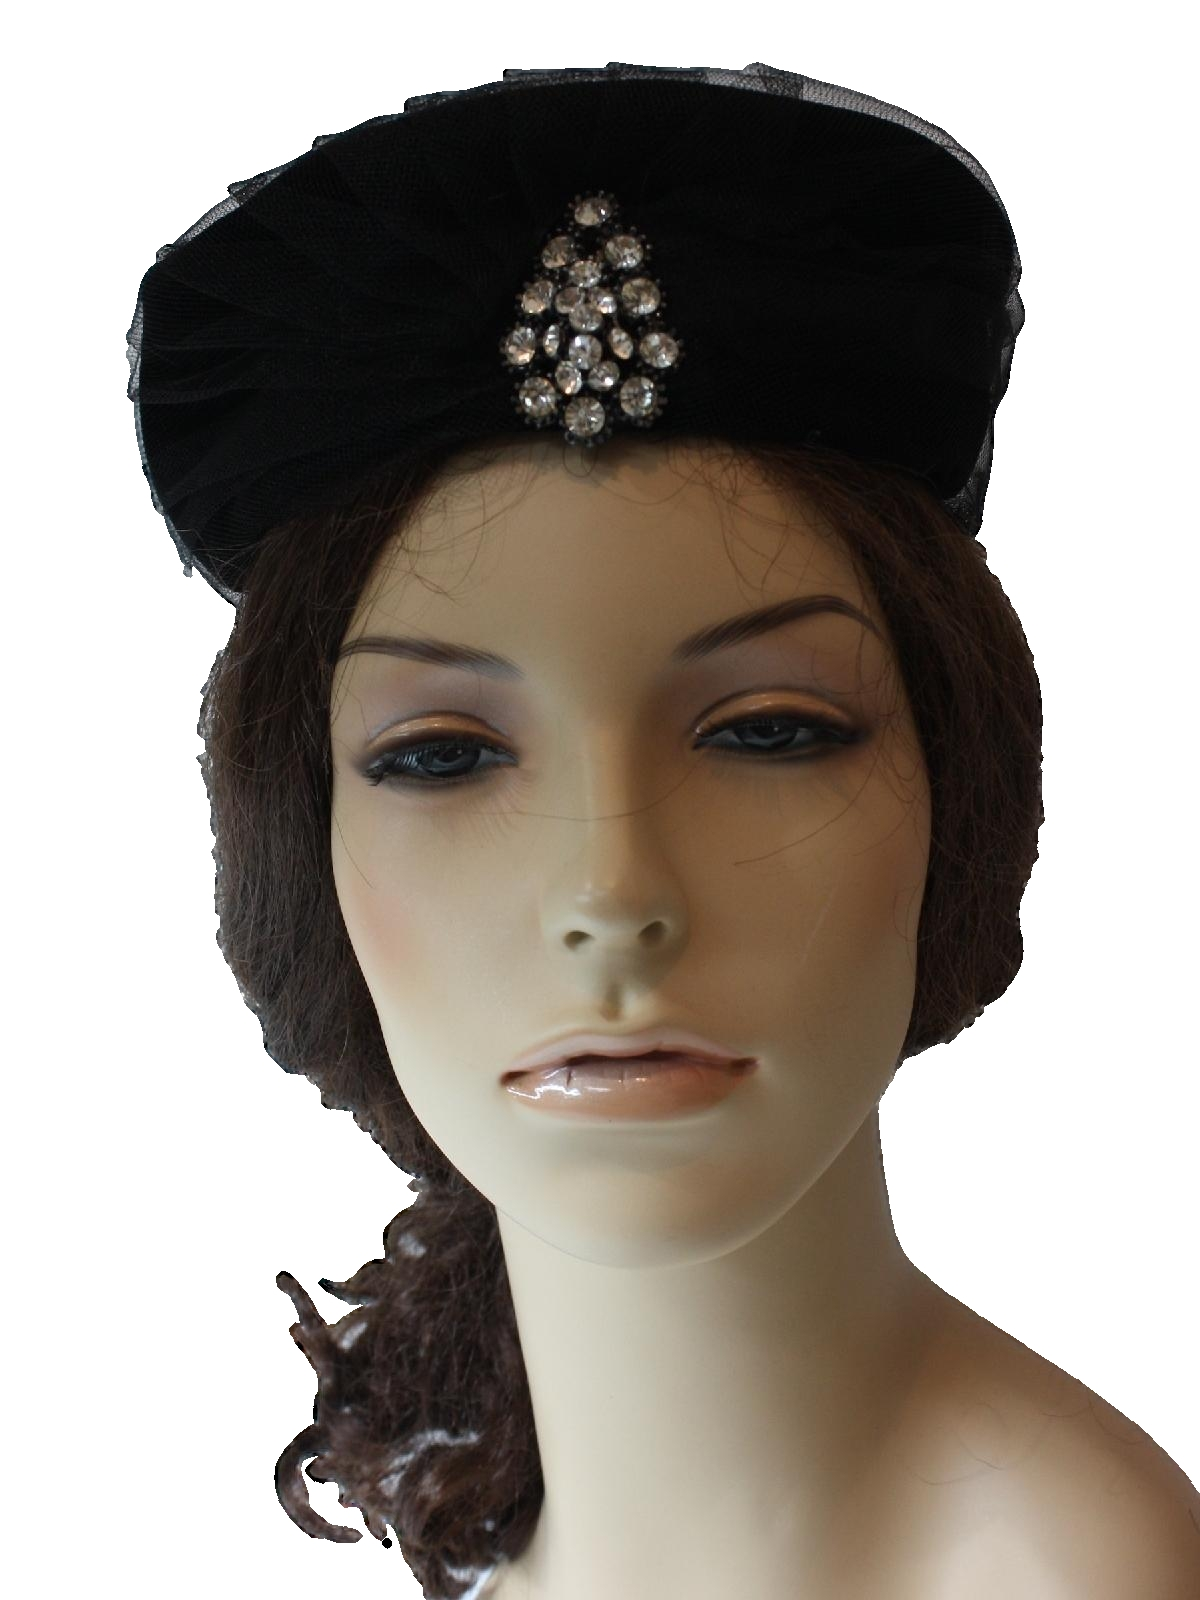 Retro 1960 s Hat (Evelyn Varon)   60s -Evelyn Varon- Womens black velveteen  hat having a fine netting over the crown and side walls. e8f95d8a109